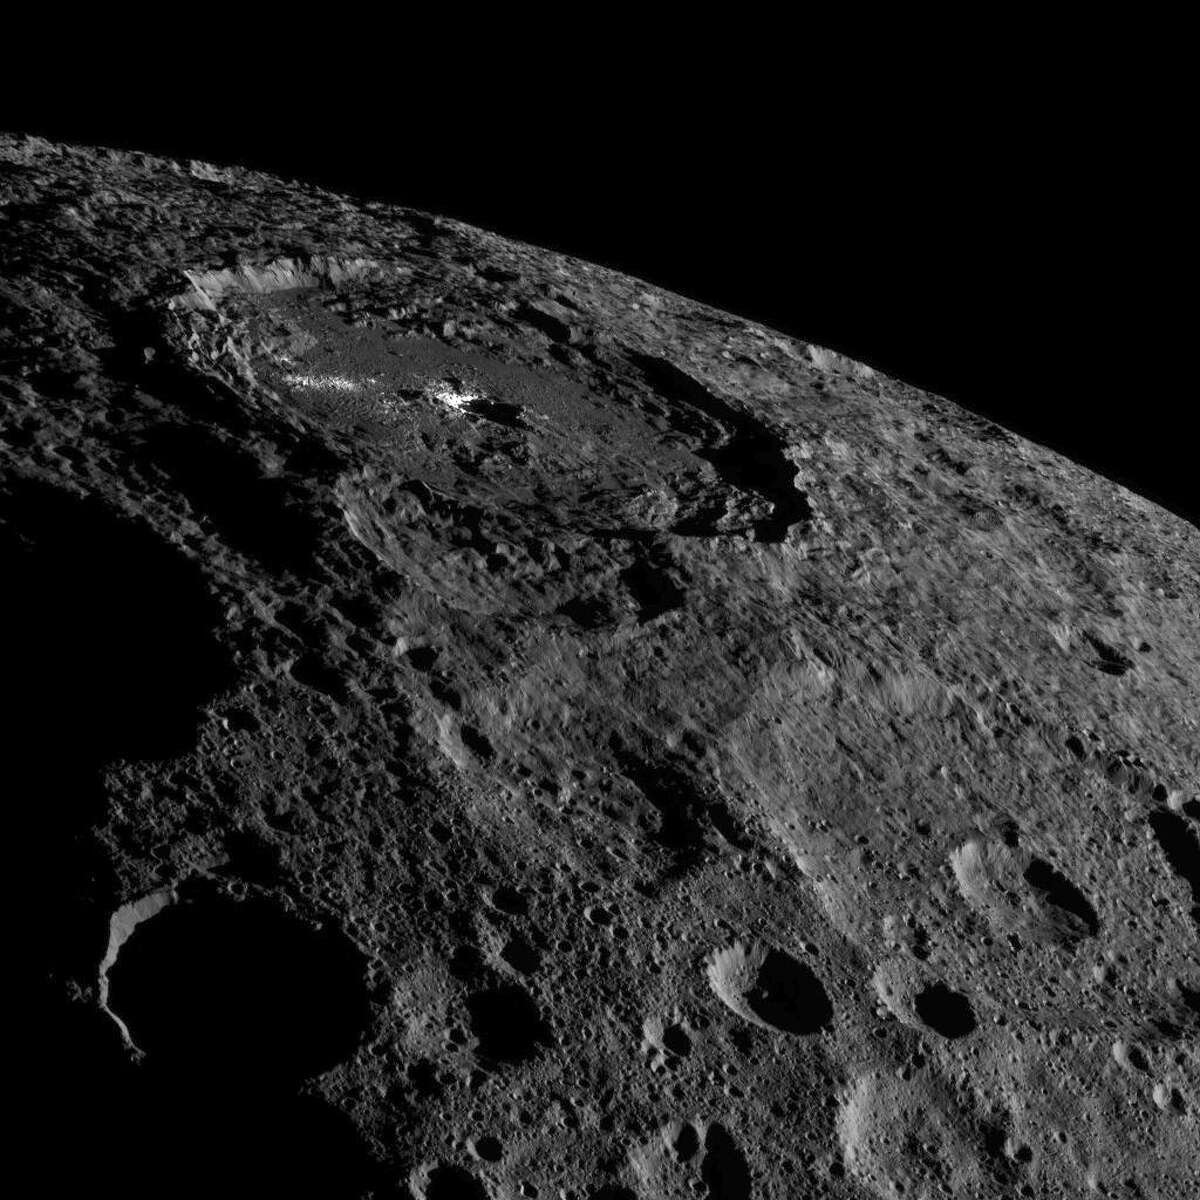 During its sixth orbit of Ceres, NASA's Dawn spacecraft recently snapped dozens of images of the dwarf planet, the largest object between Mars and Jupiter.